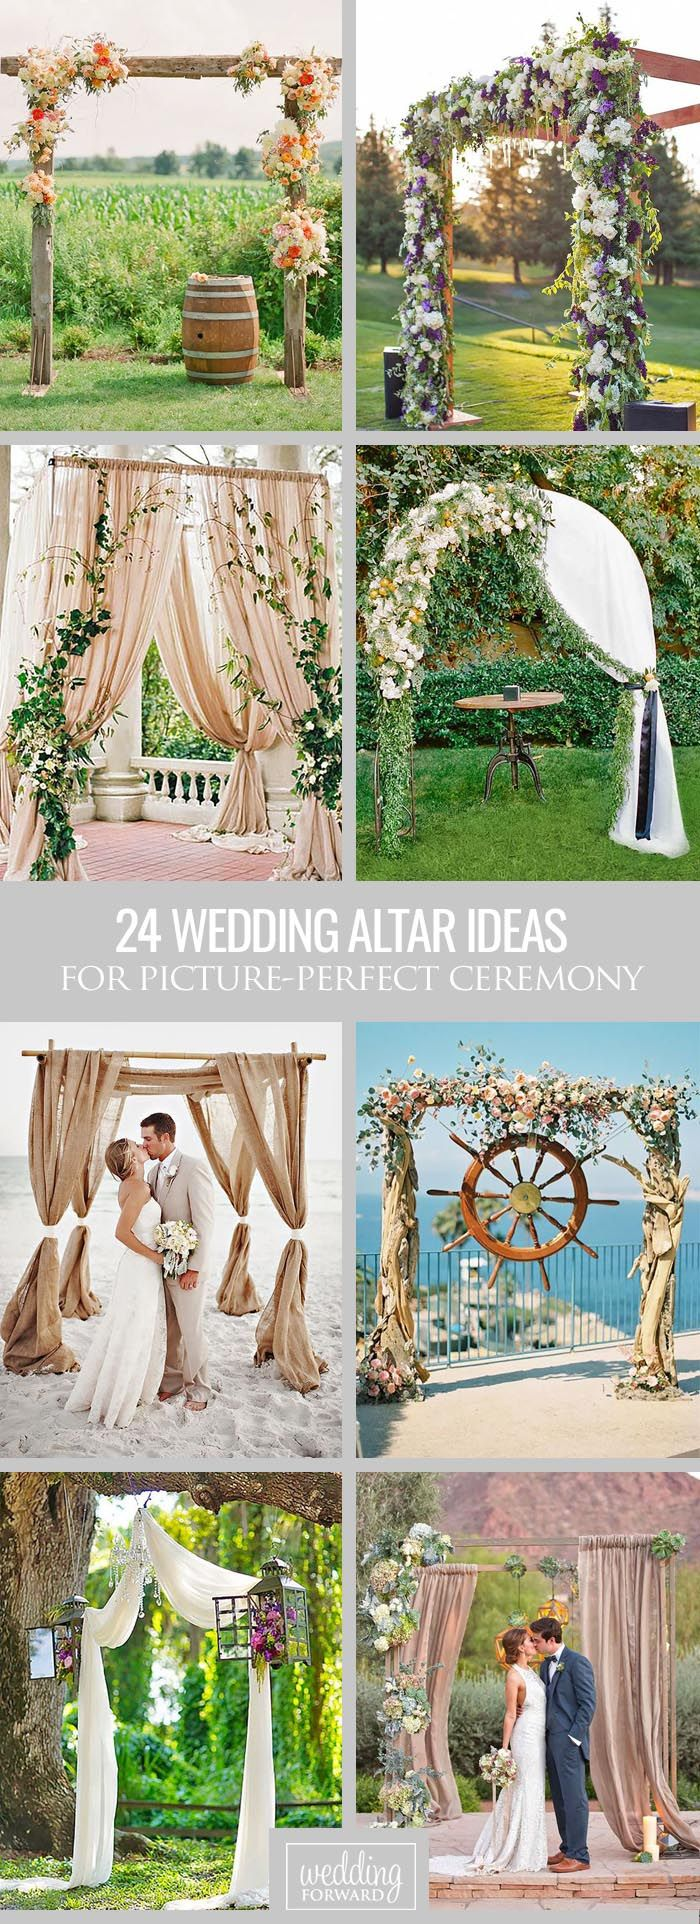 24 Picture-Perfect Wedding Ceremony Altar Ideas ❤ Here are a few of our absolute favorite wedding ceremony altar ideas! See more: http://www.weddingforward.com/wedding-ceremony-altar-ideas/ #weddings #decorations